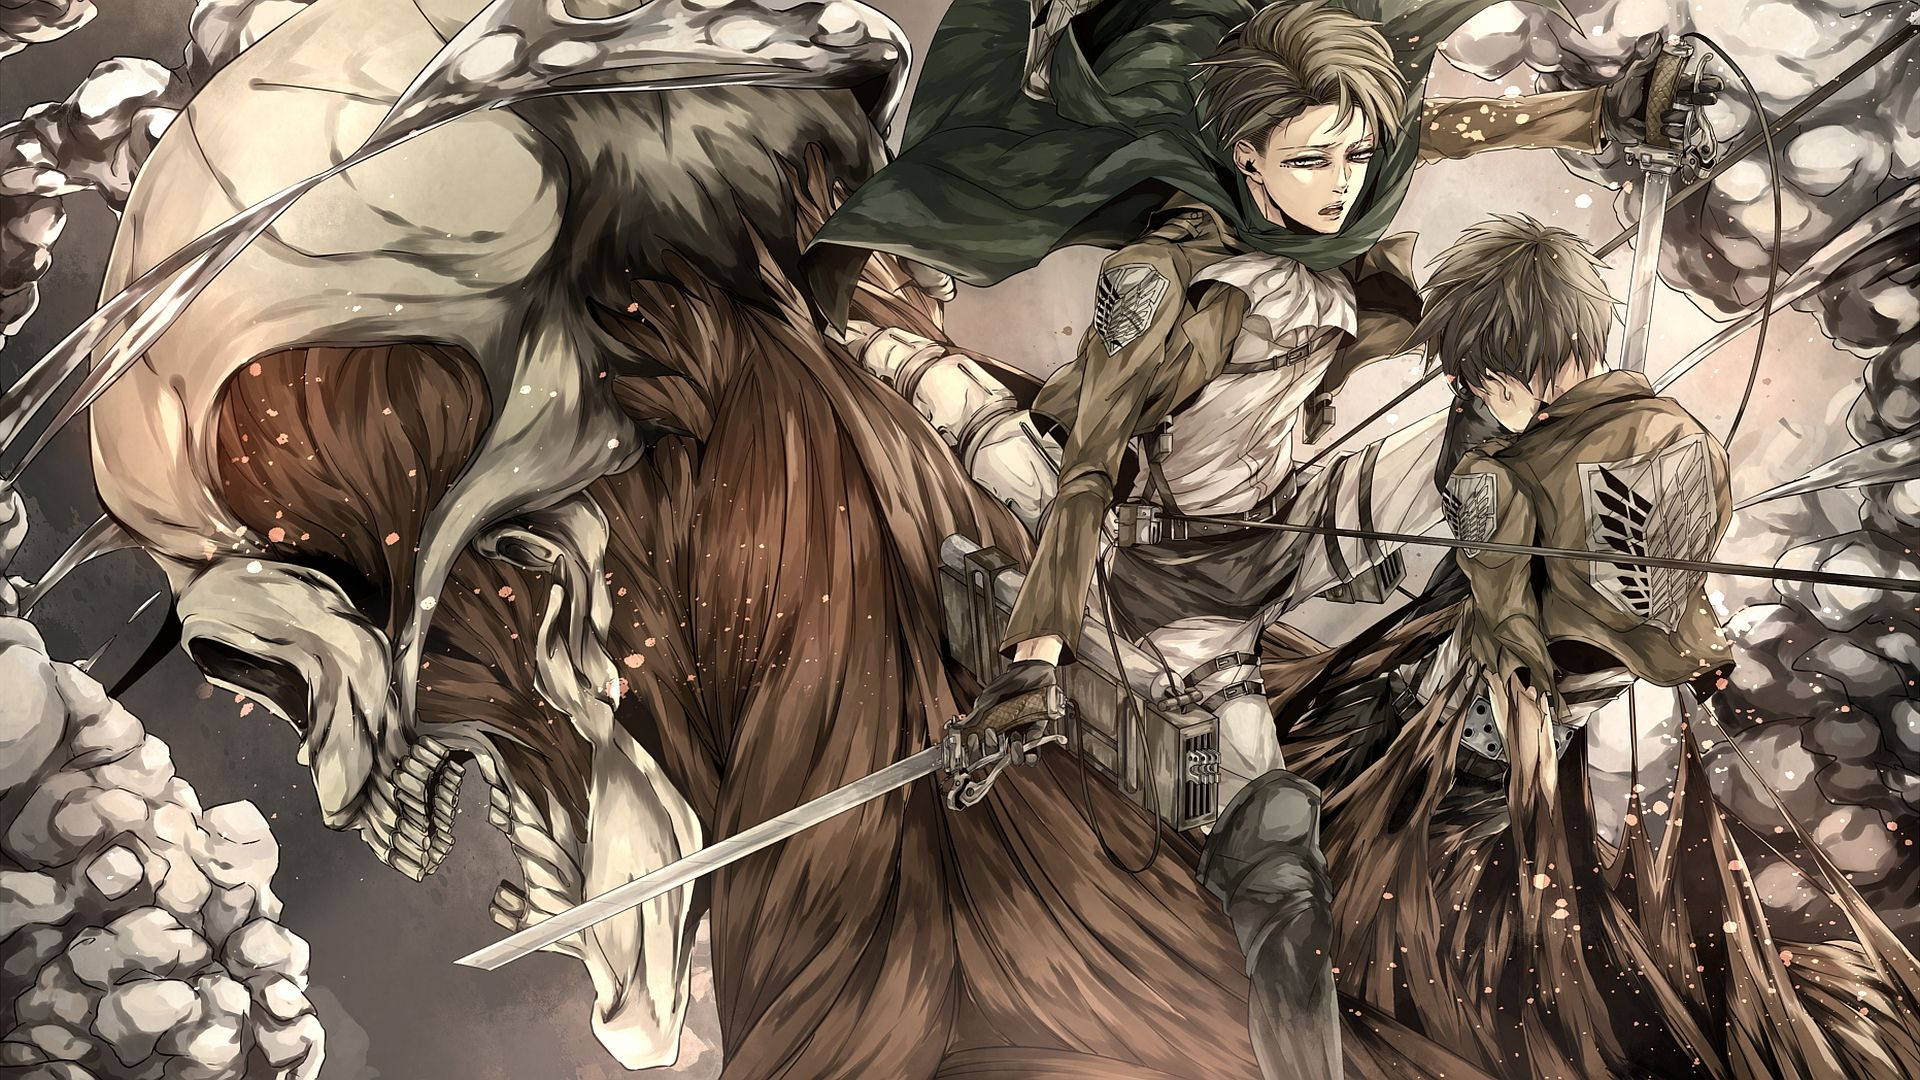 anime attack on titan levi ackerman eren yeager